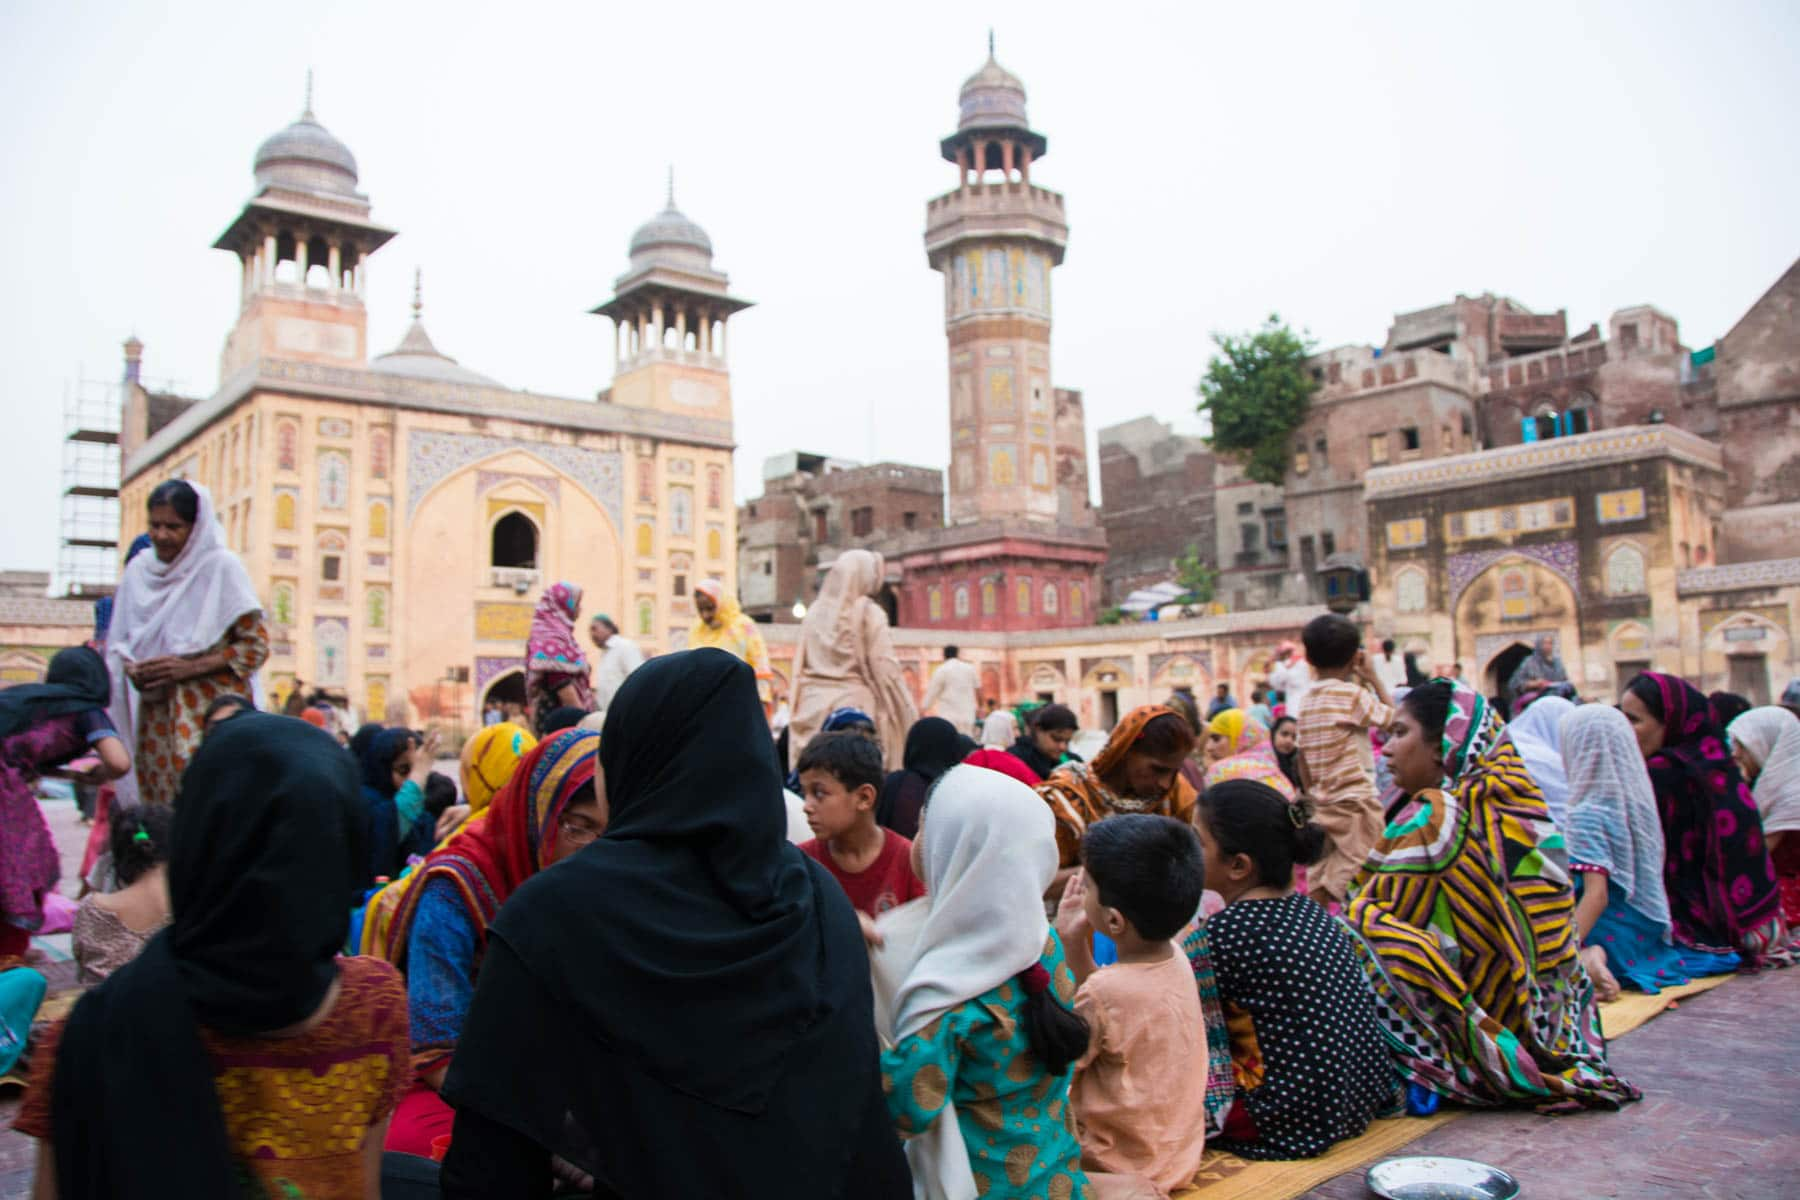 Travel in Pakistan during Ramadan - Women having iftar in Wazir Khan mosque in Lahore, Pakistan - Lost With Purpose